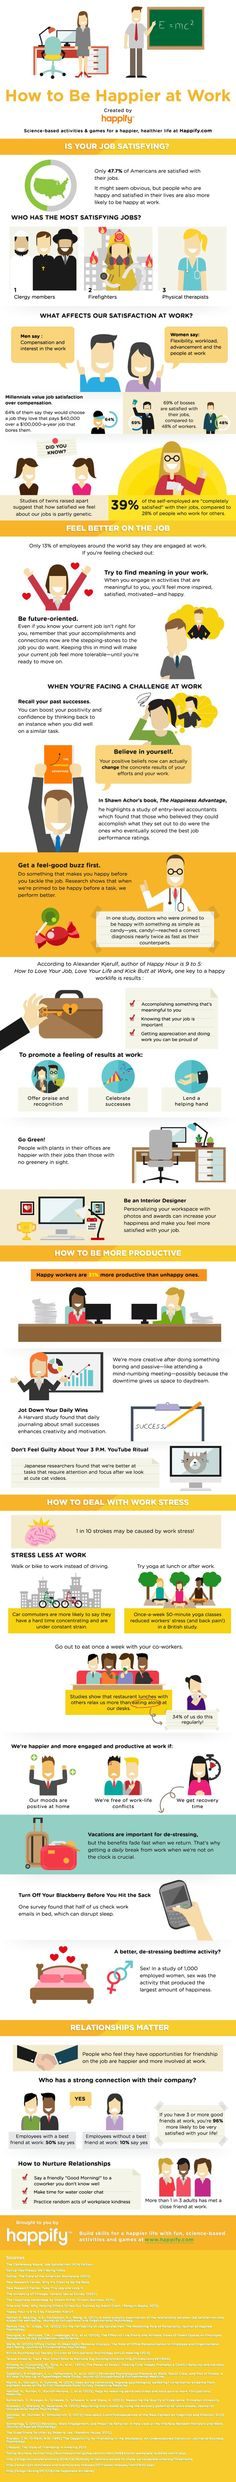 Important ways to enhance your mental health and improve happiness at work.